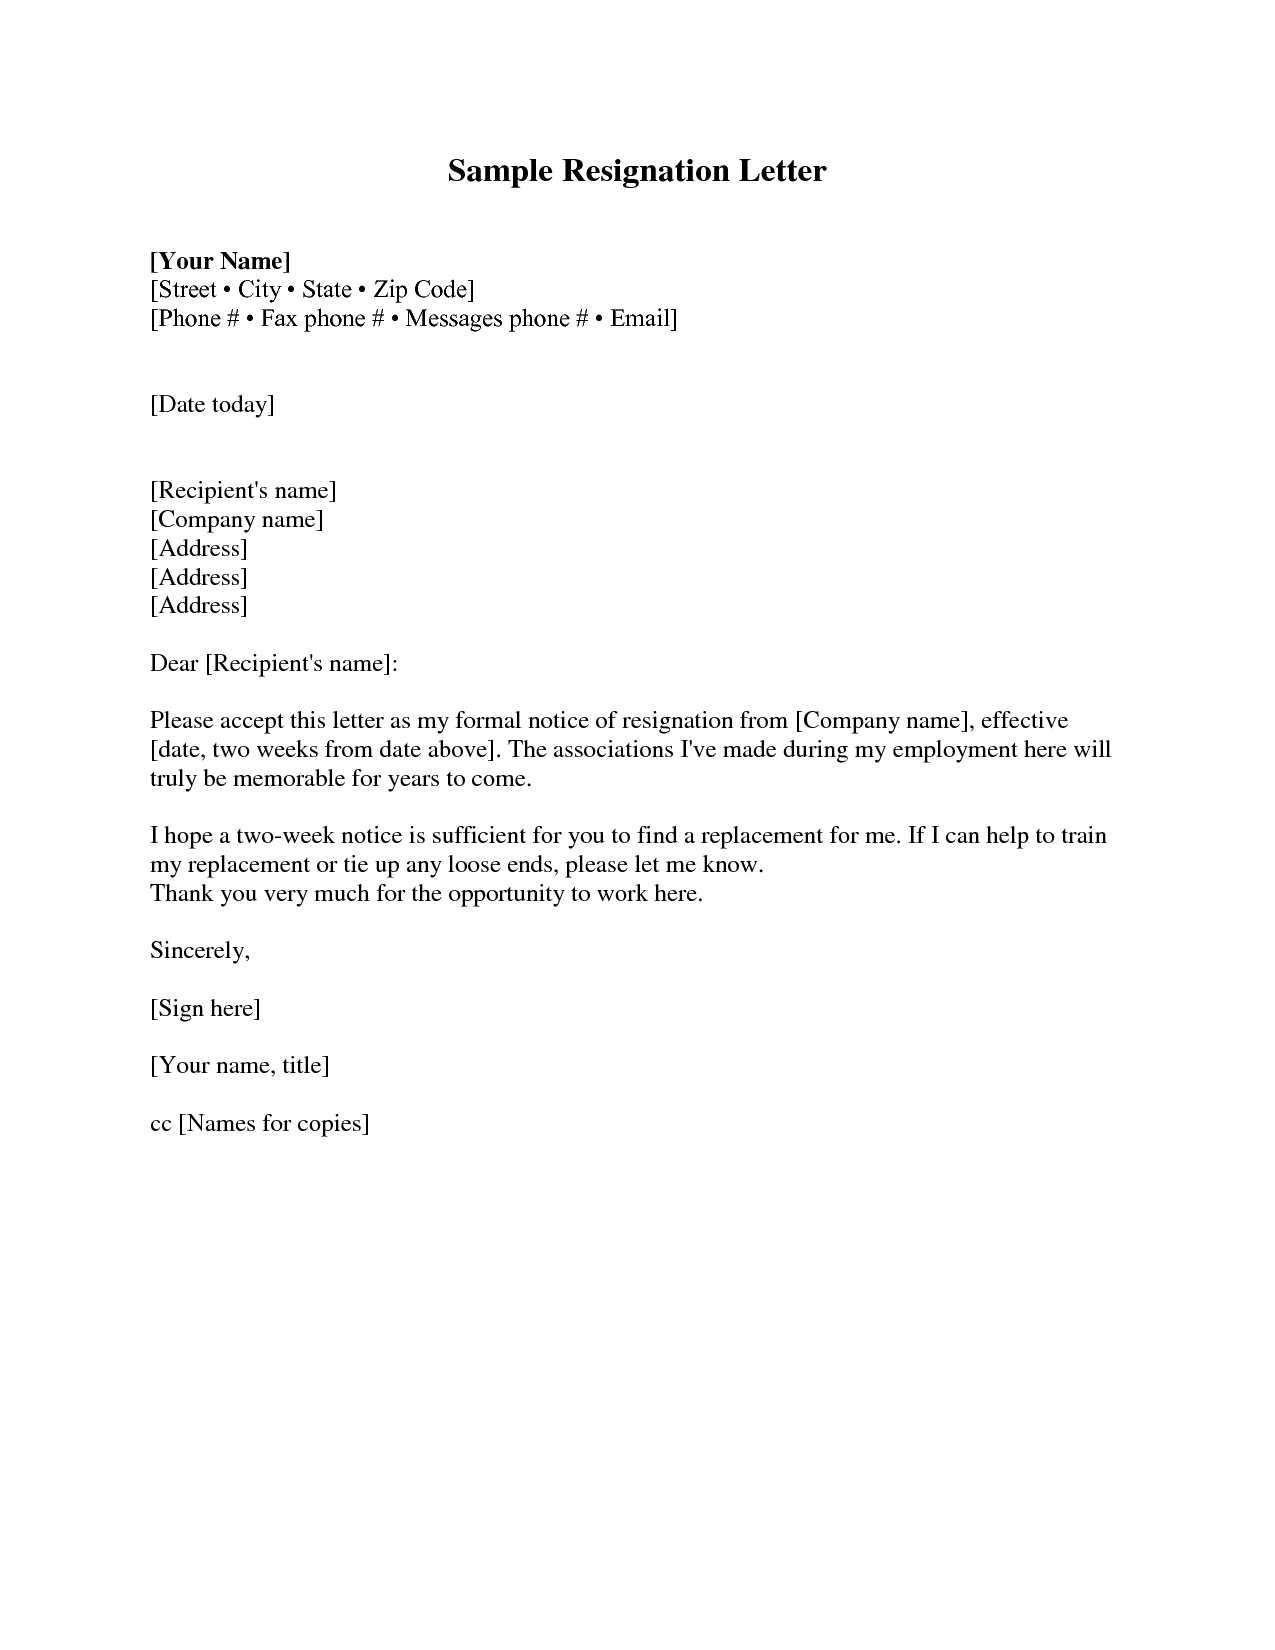 resignation letter sample 2 weeks notice | Free2IMG.| yup